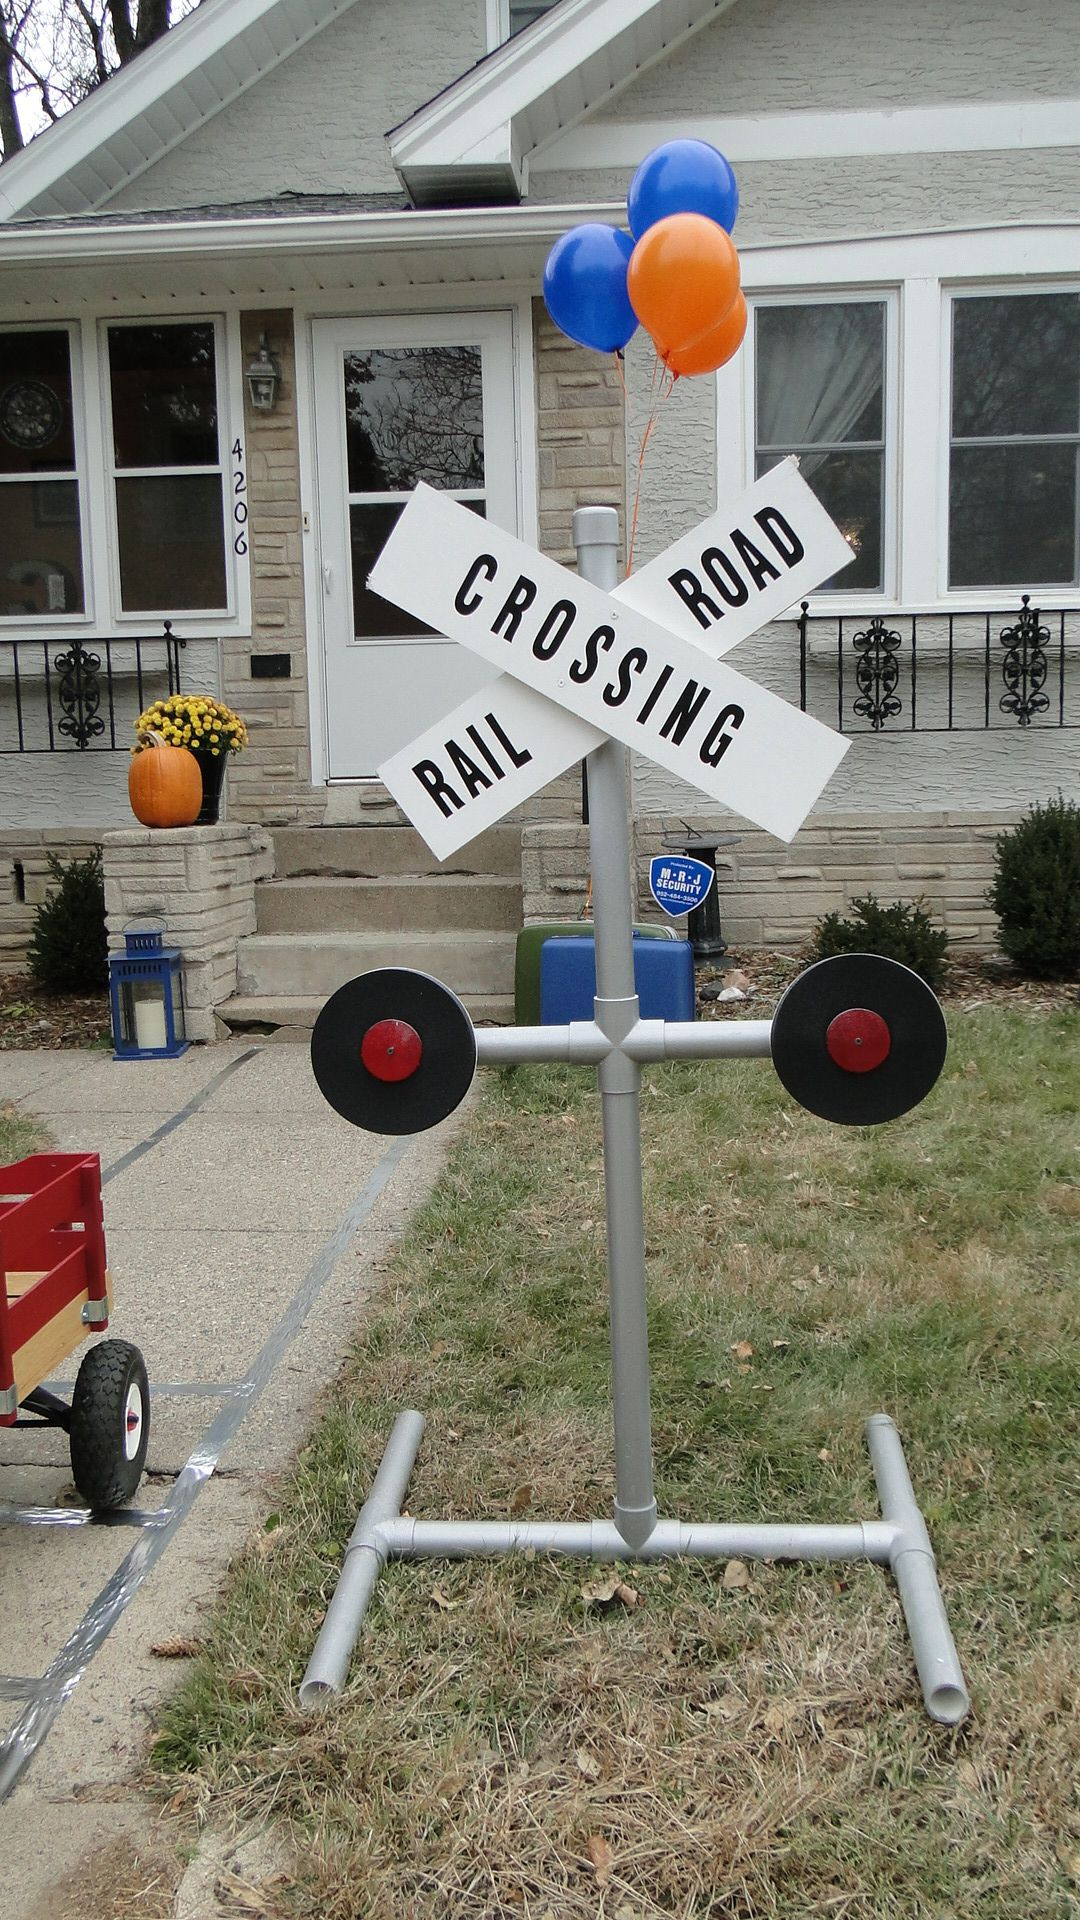 DIY railroad crossing sign made from PVC pipe, plywood